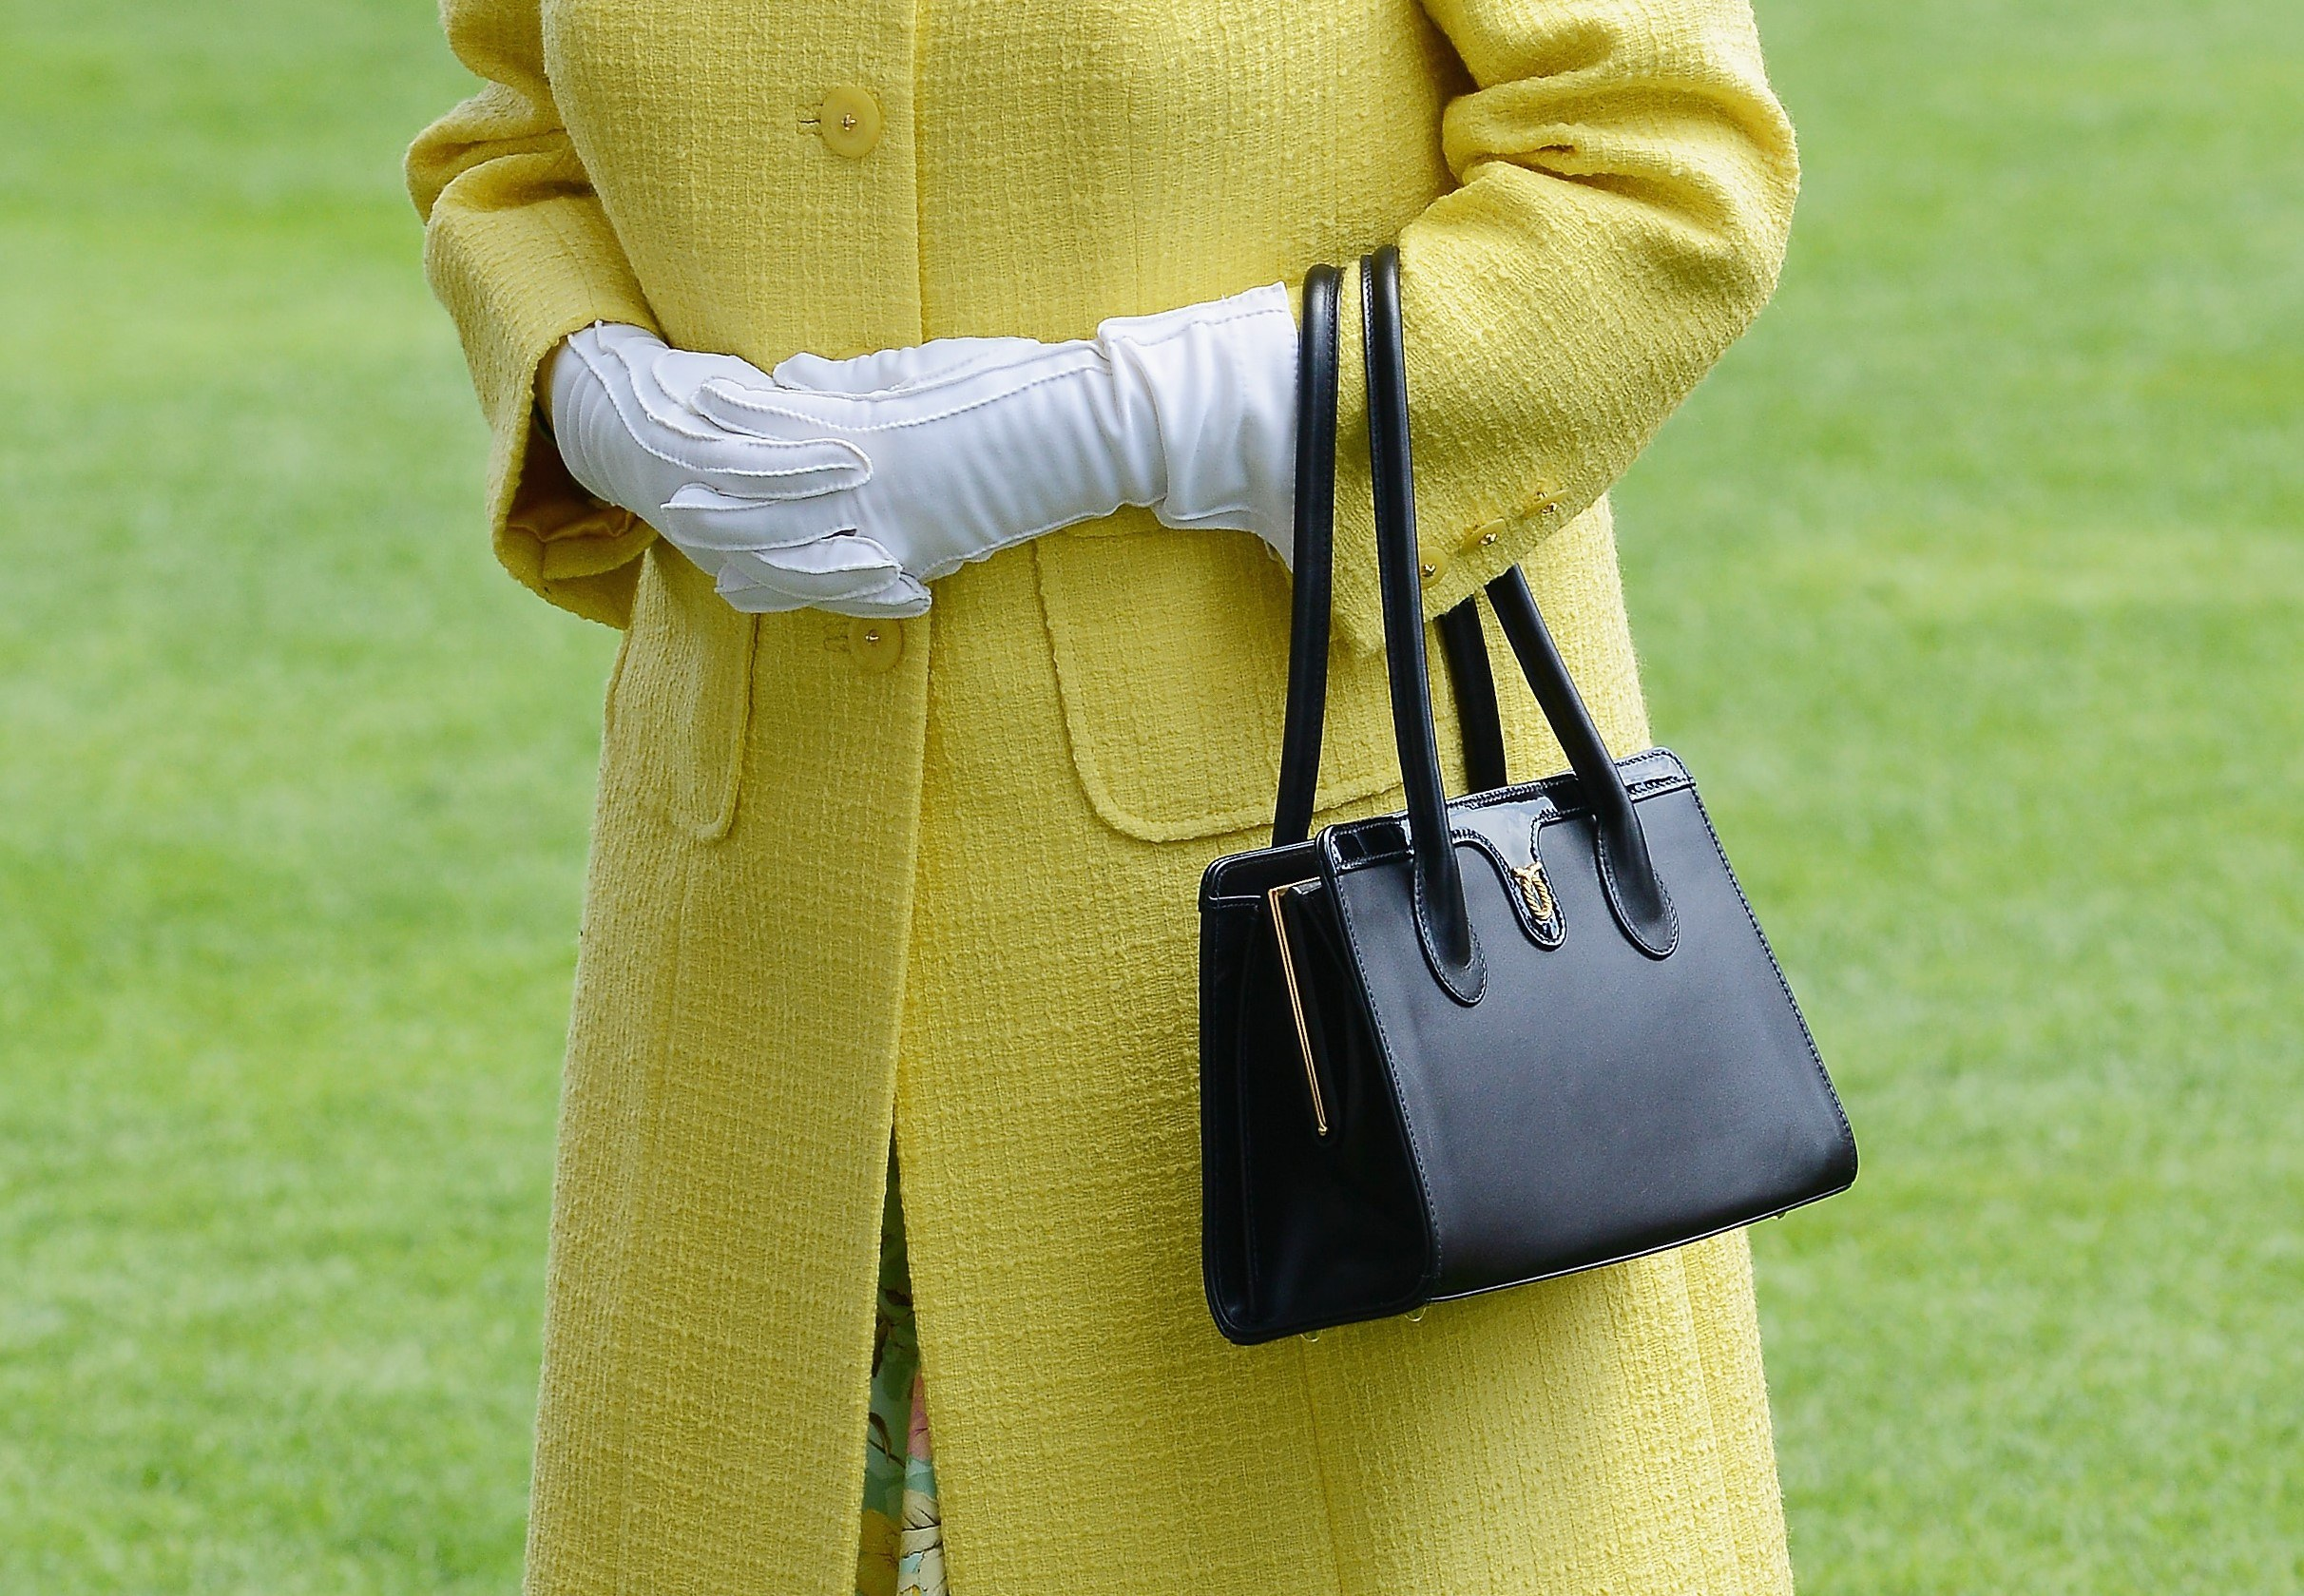 79fbc5327ca4 How Queen Elizabeth Uses Her Purse to Send Secret Messages